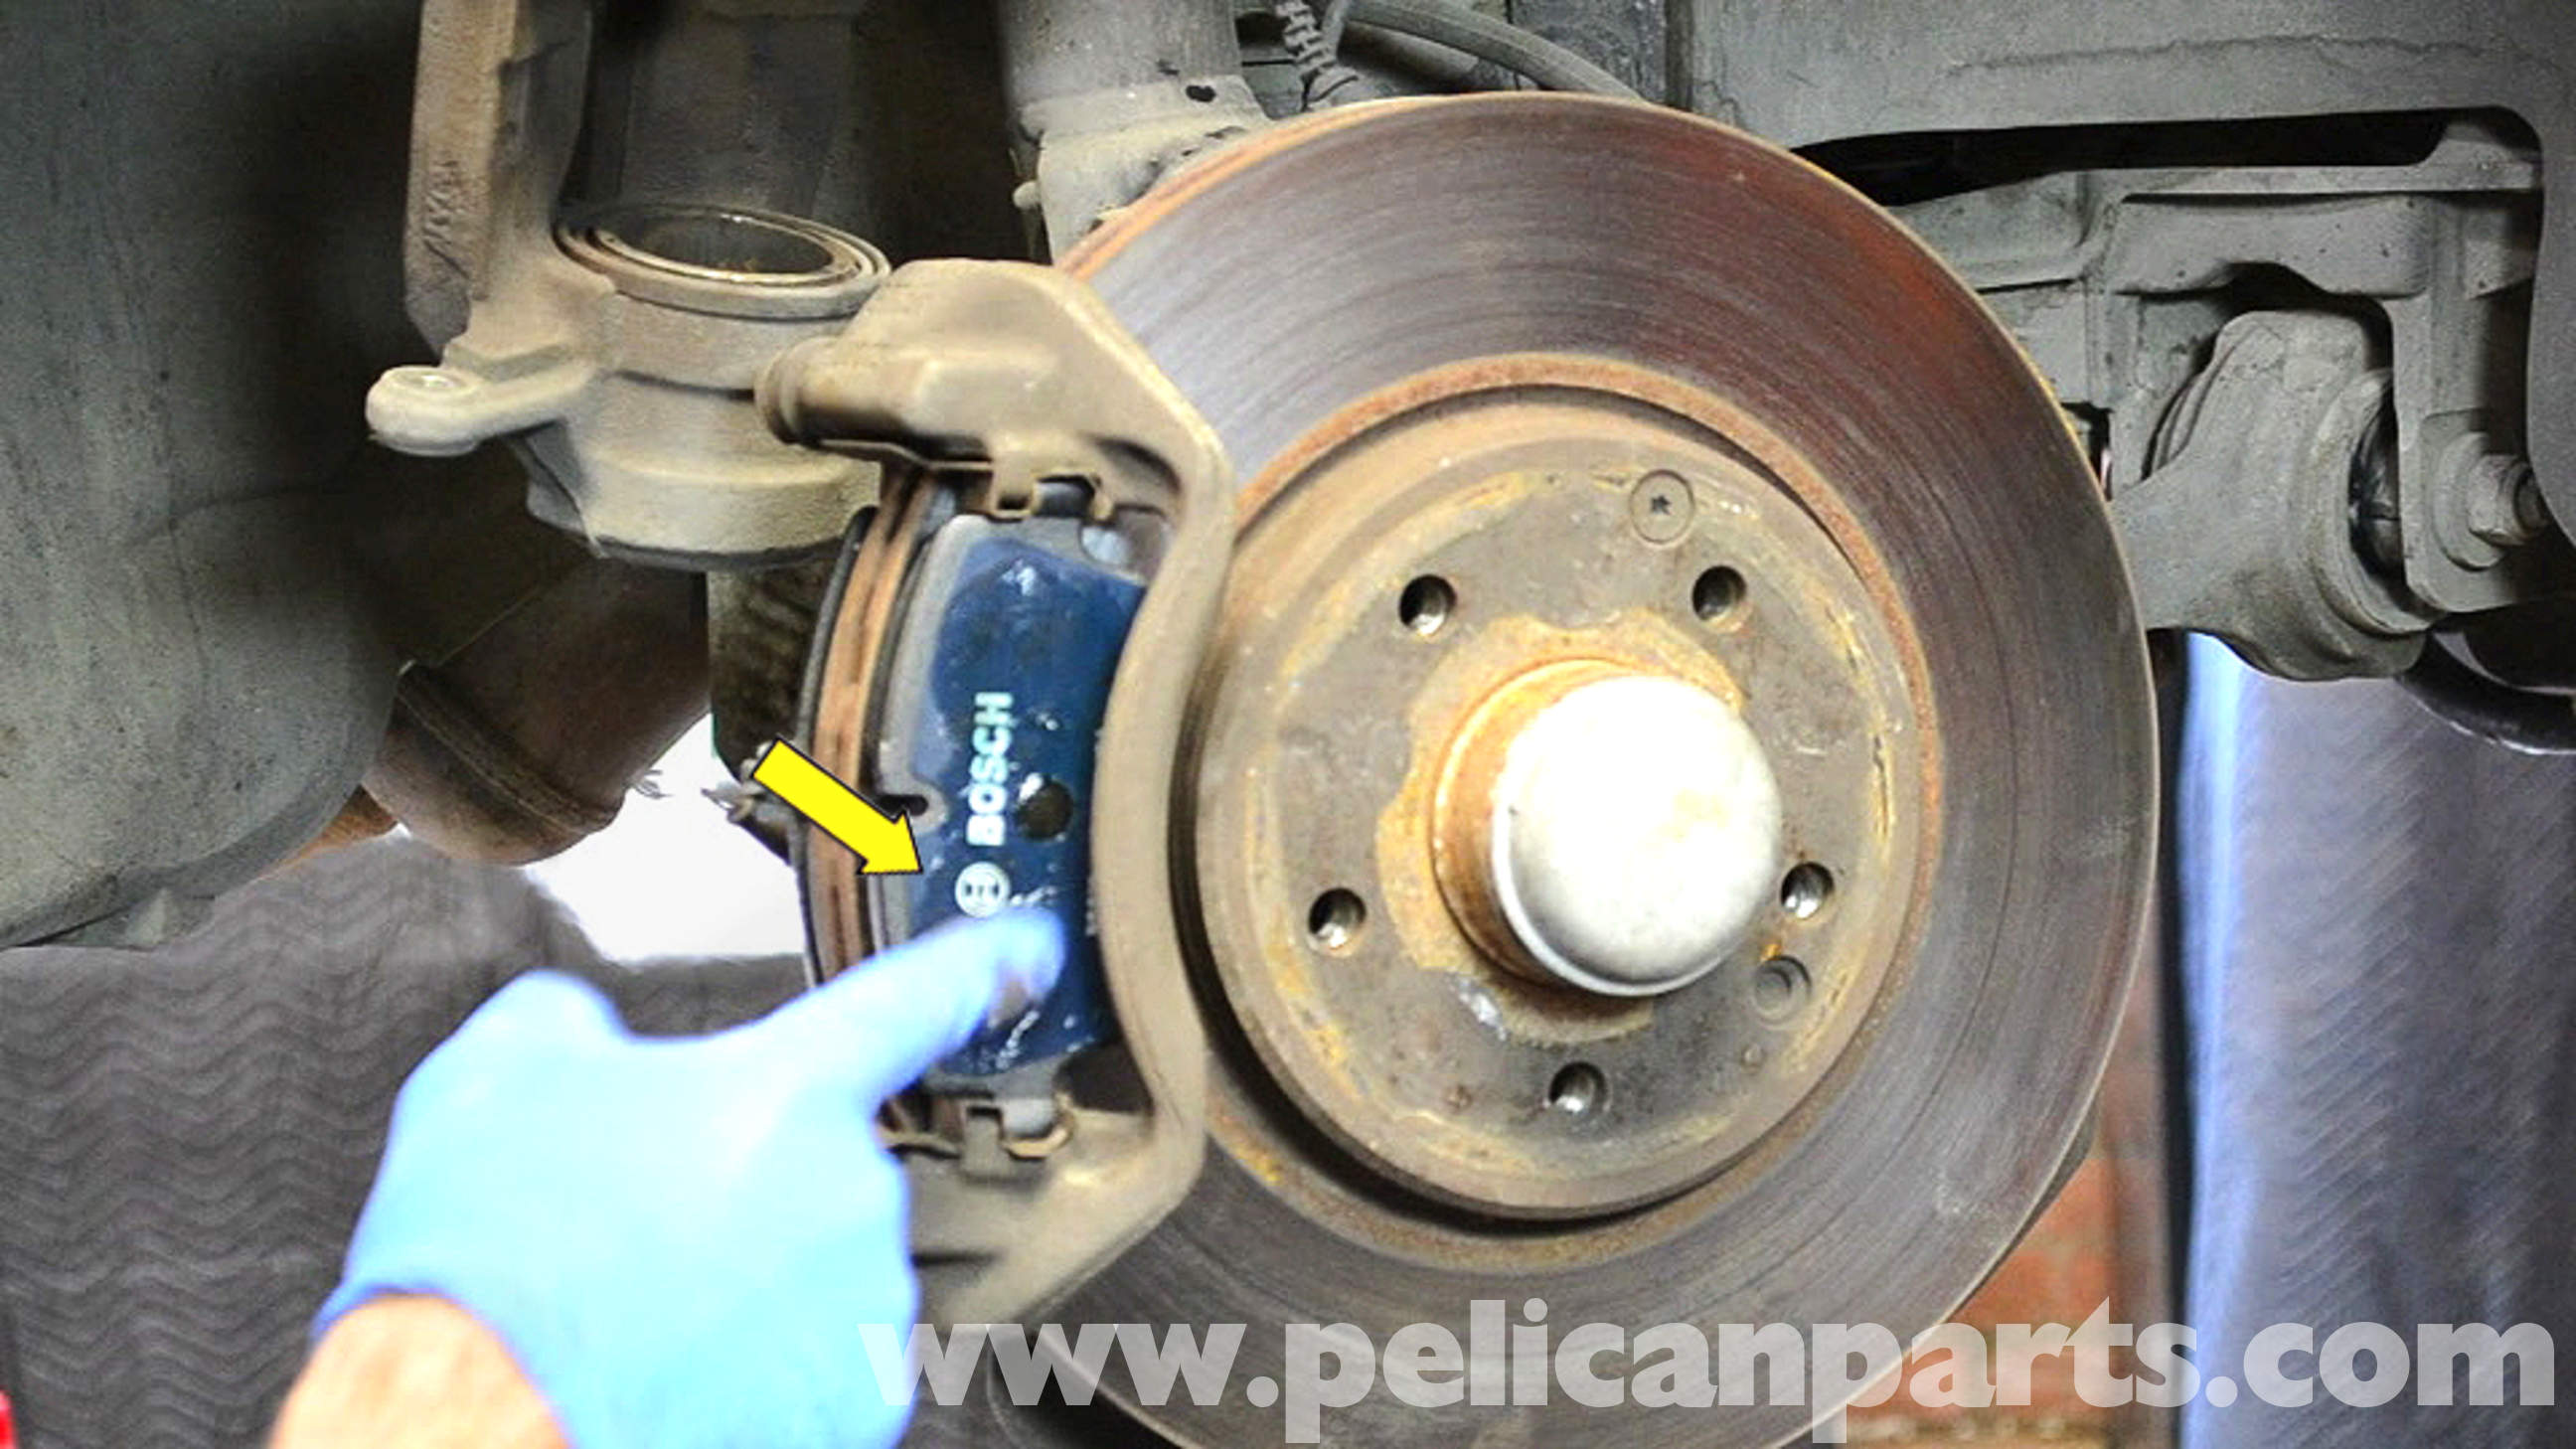 Mercedes benz w203 front brake pad replacement 2001 for Mercedes benz rotors replacement